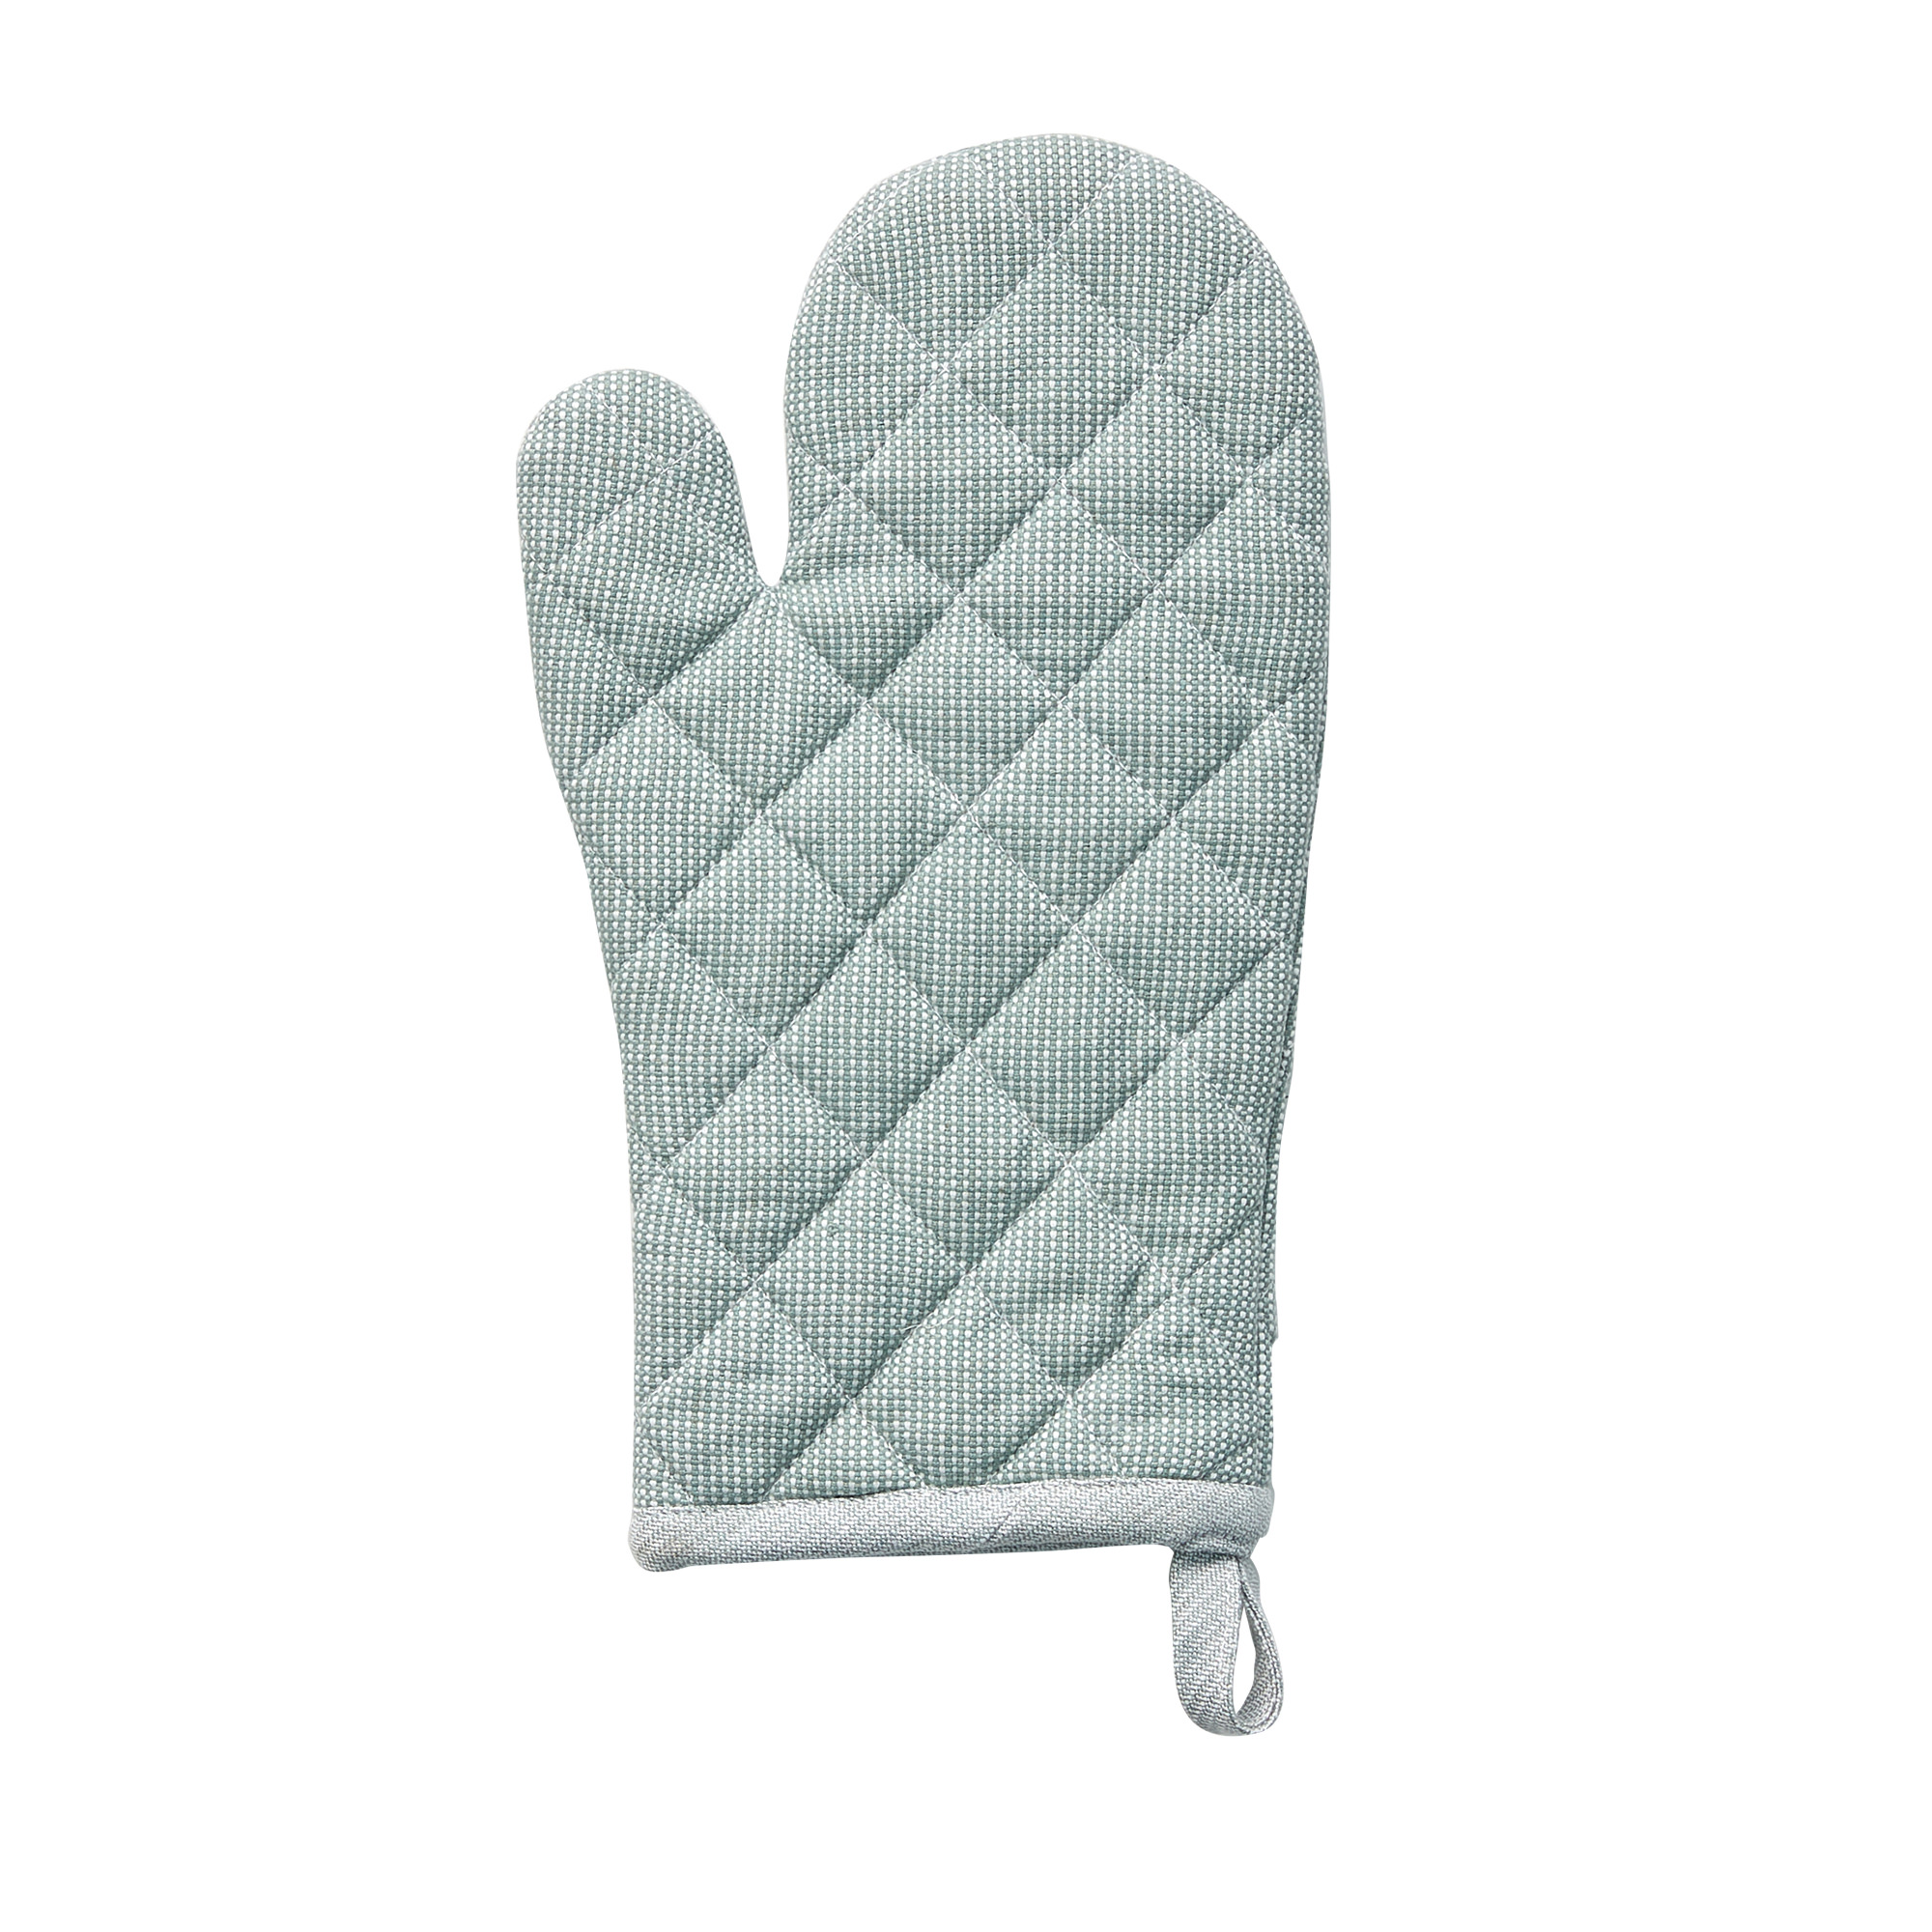 Salisbury & Co York Oven Glove Green